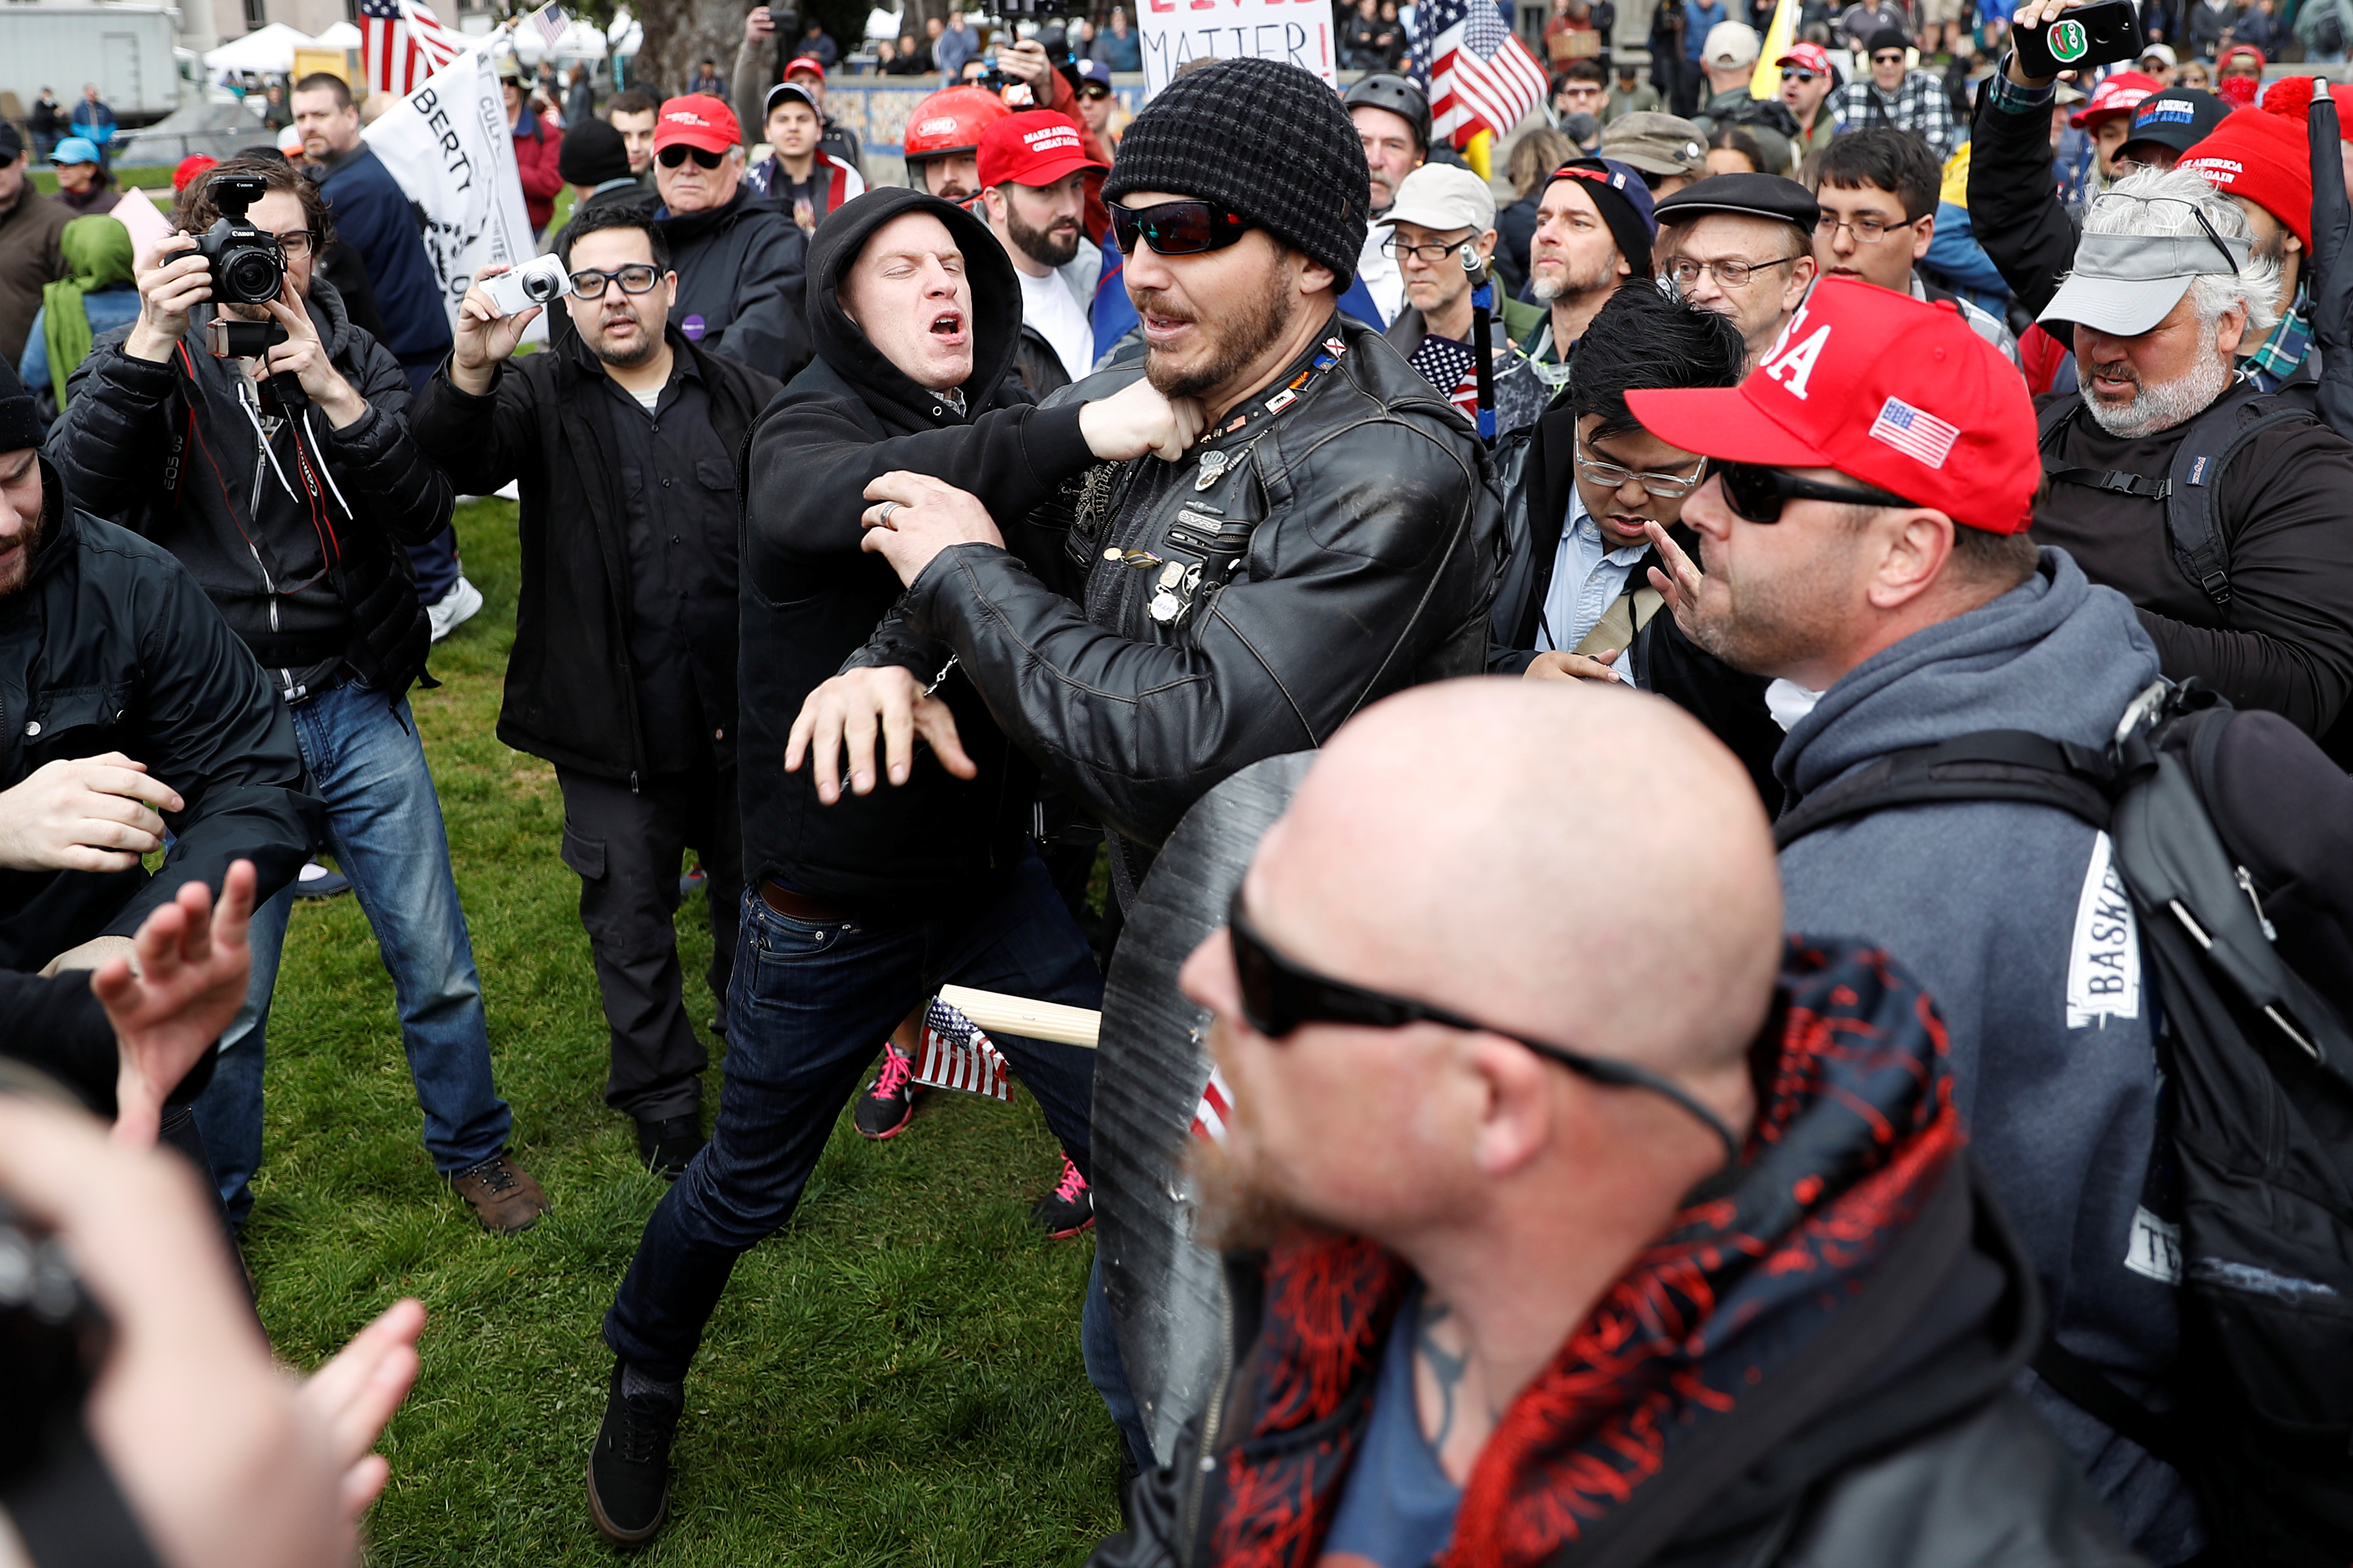 """A man (L) punches a supporter of U.S. President Donald Trump during a """"People 4 Trump"""" rally in Berkeley, California March 4, 2017. REUTERS/Stephen Lam"""